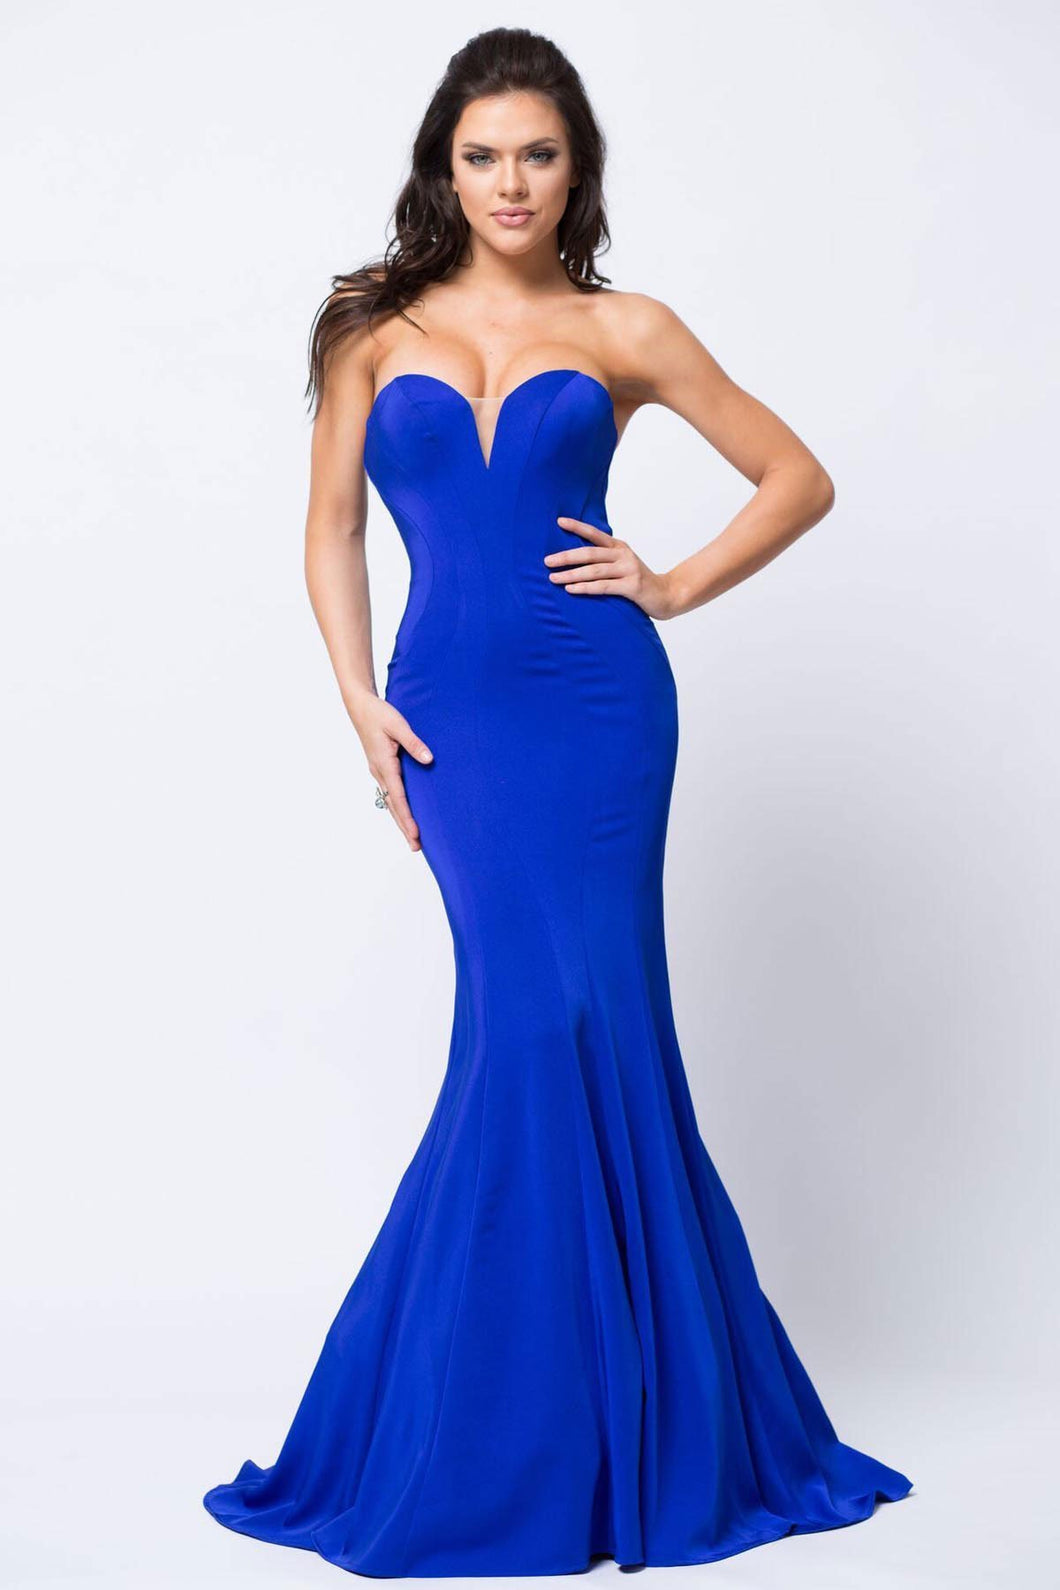 Sweetheart Beautiful Prom Gowns AC367-Prom Dresses-smcfashion.com